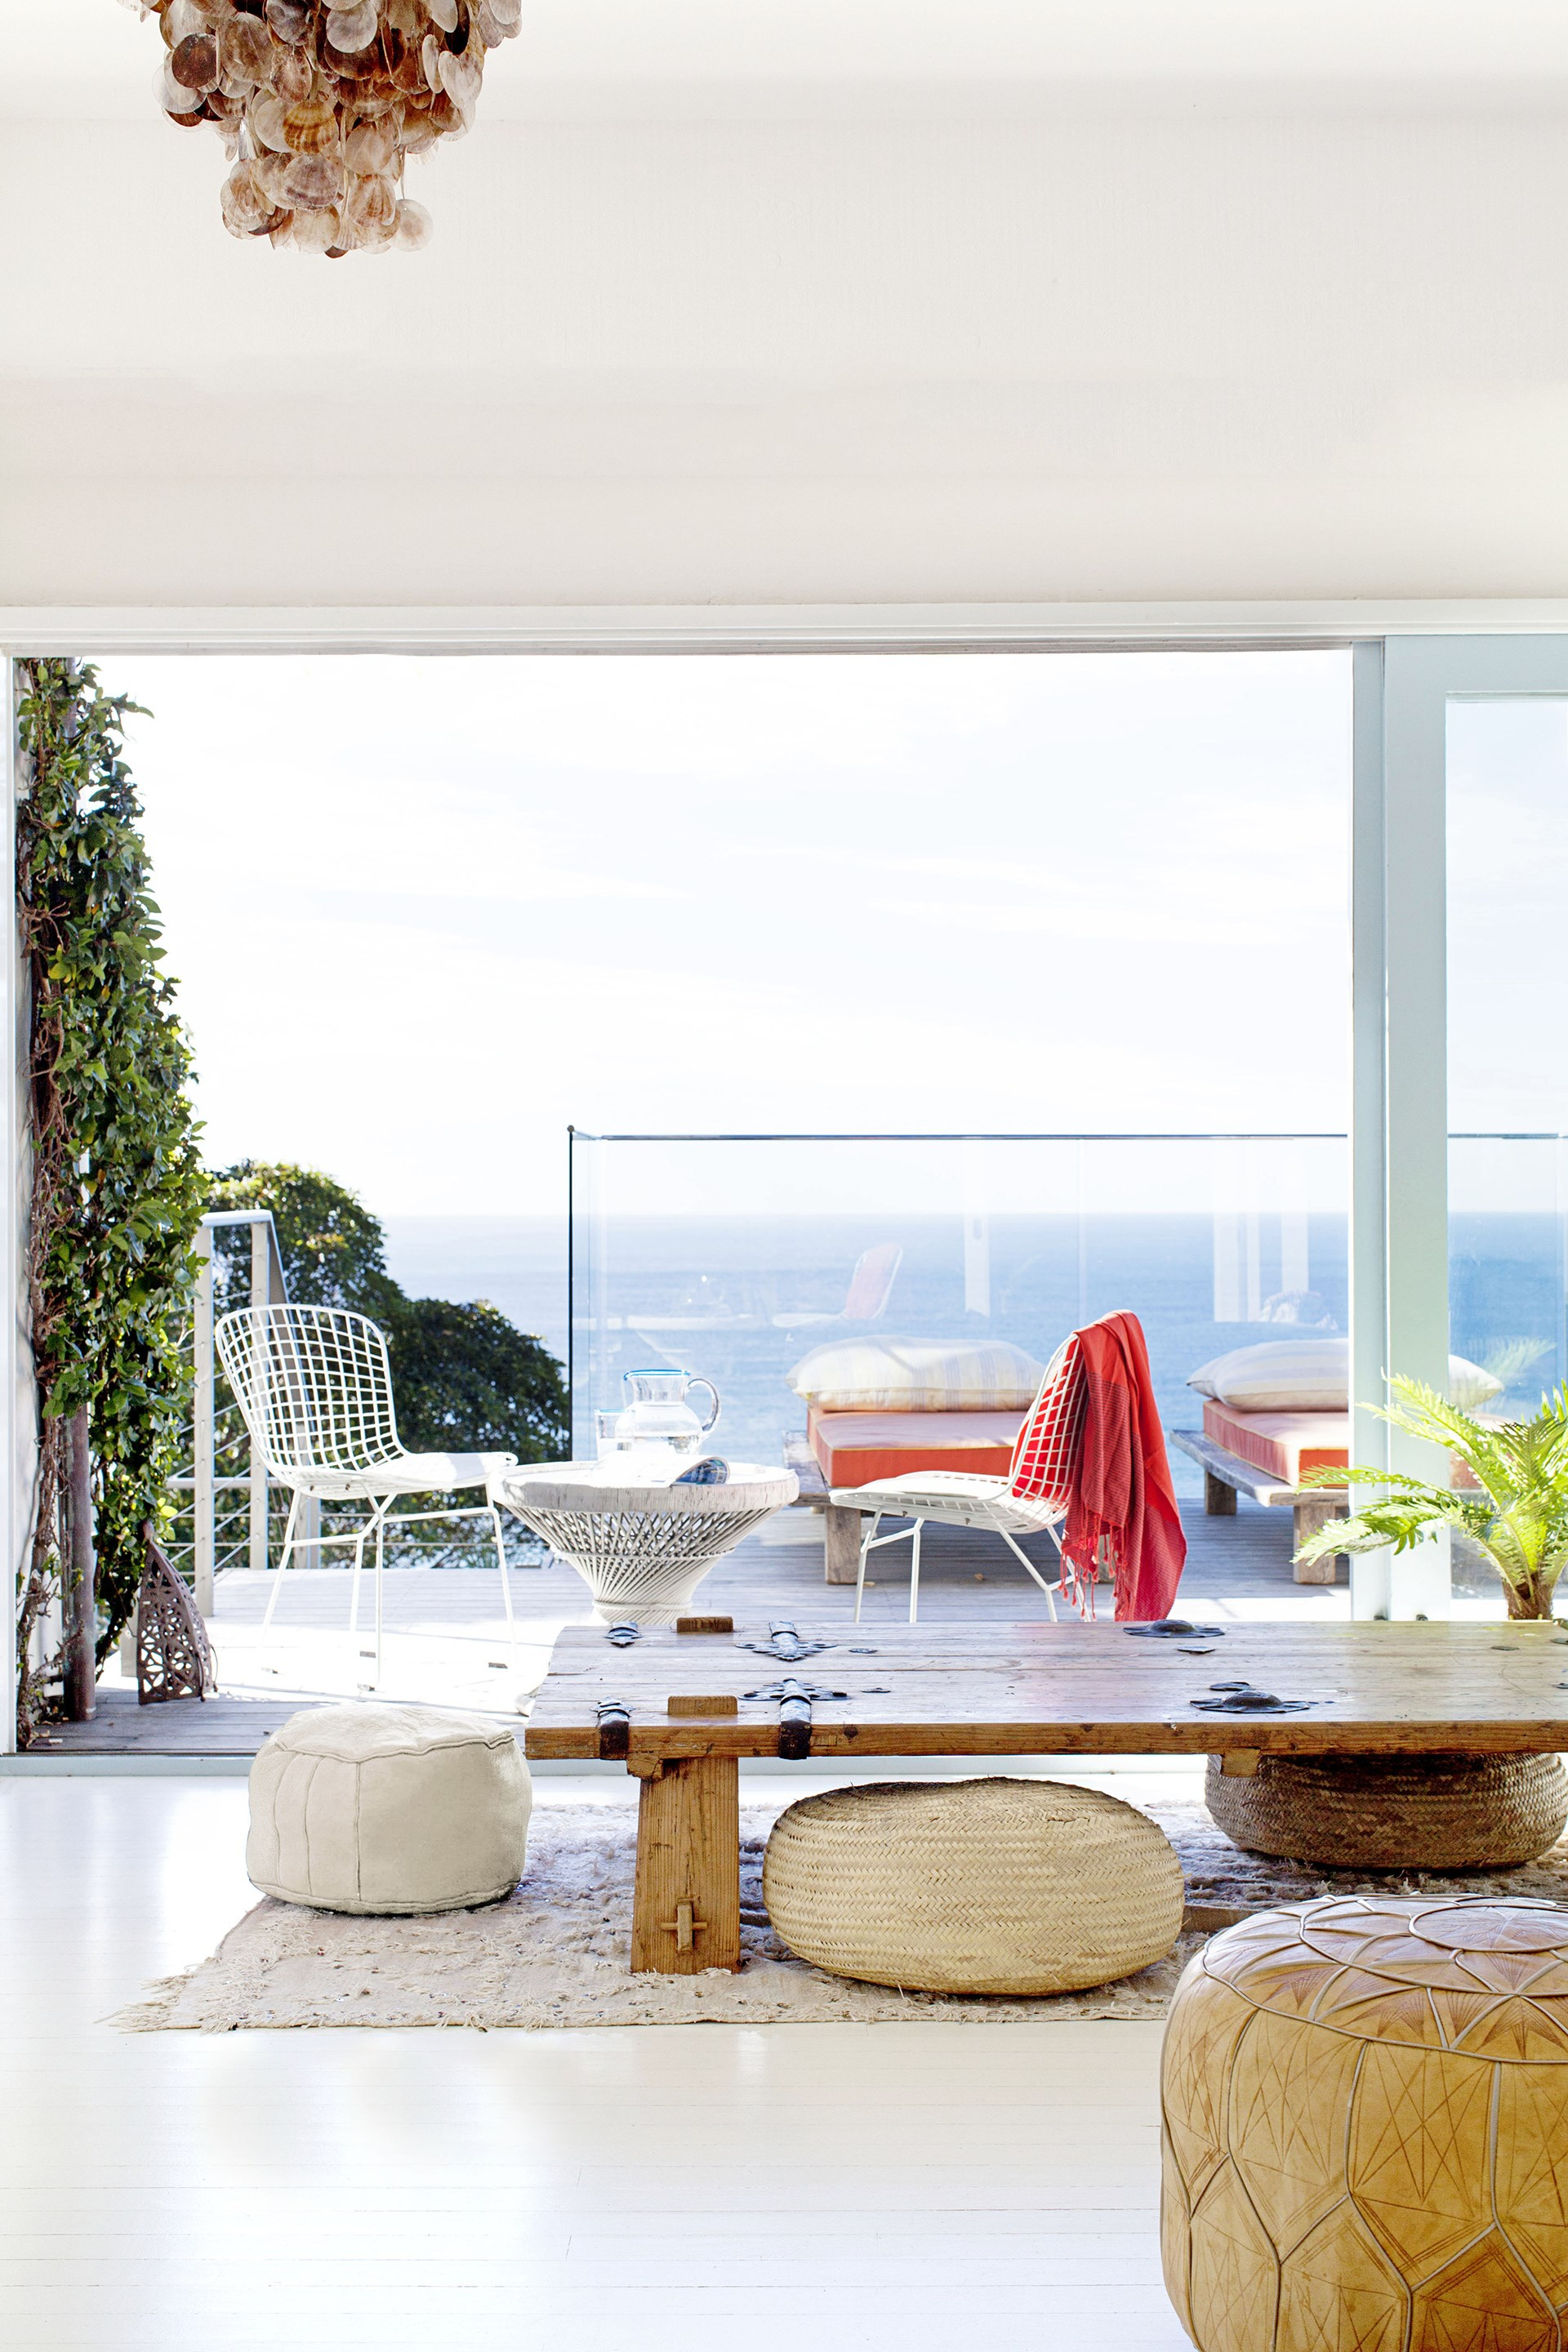 Rustic timber and pops of pastel are not uncommon in this [Moroccan inspired beach house](http://www.homestolove.com.au/gallery-heidis-moroccan-inspired-beach-house-1830) with panoramic views of the ocean between Palm Beach and Whale Beach on Sydney's northern beaches. Photo: Françoise Baudet / real living